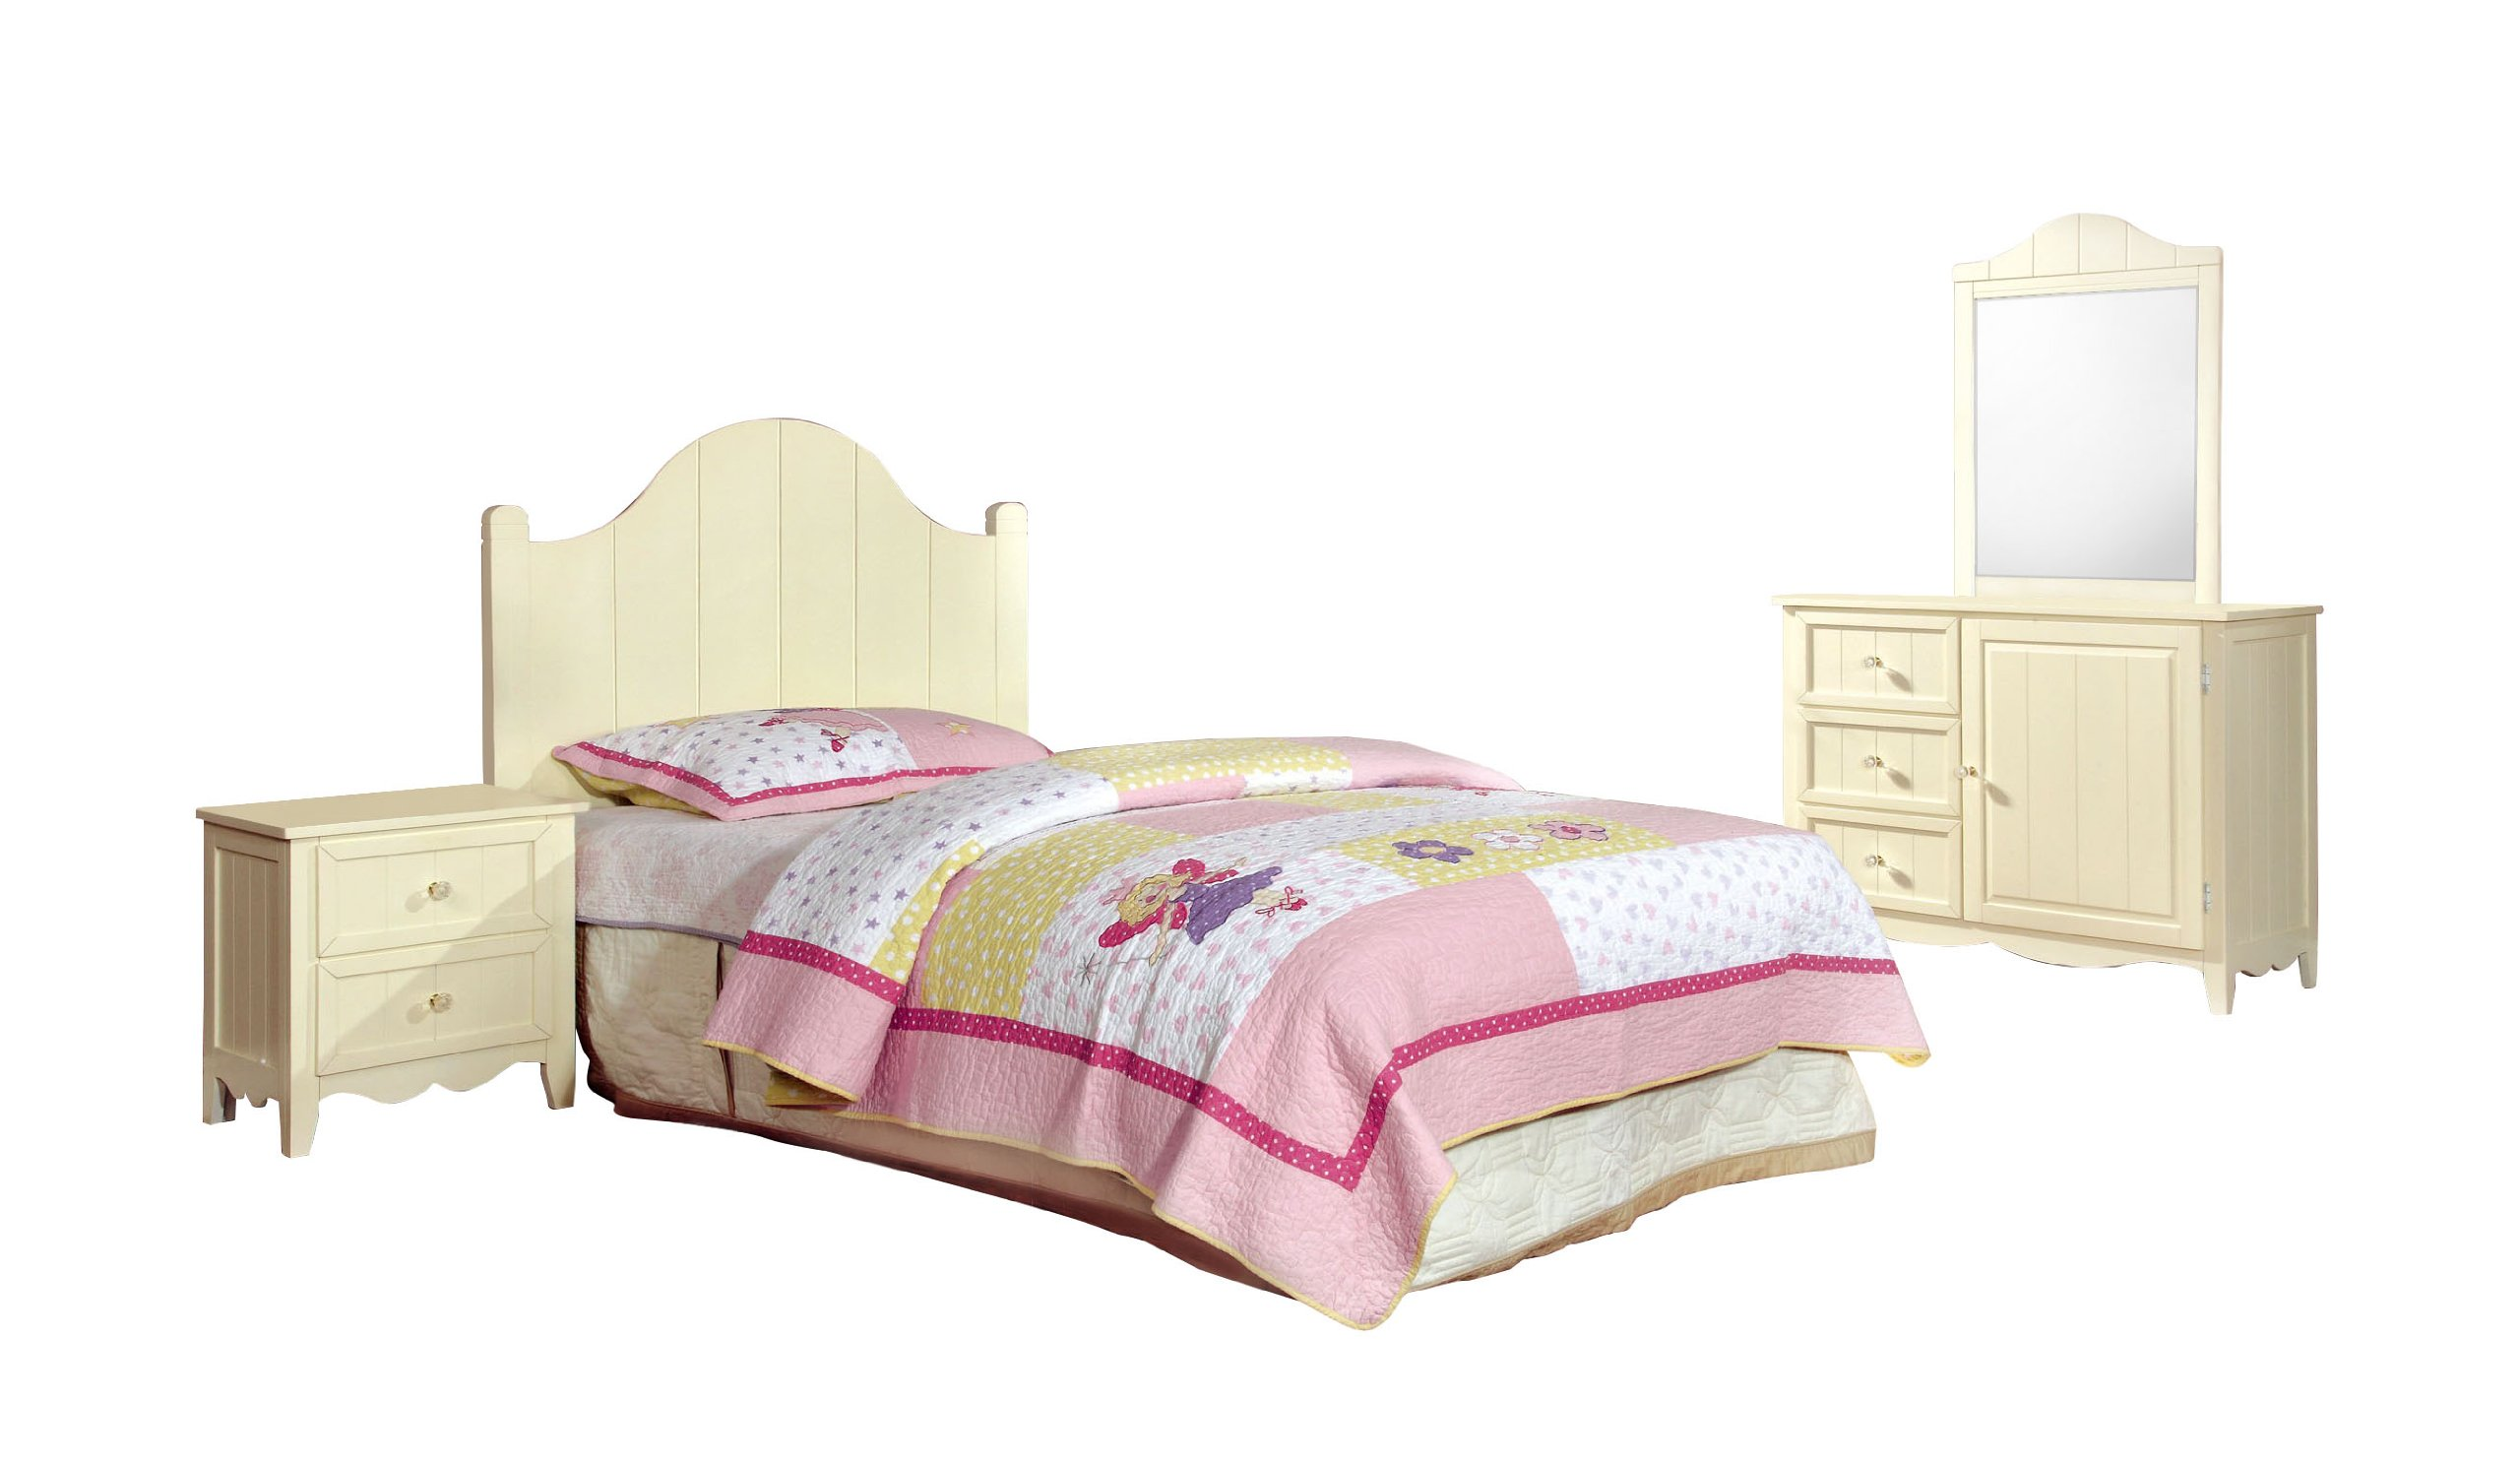 Furniture of America Roxanne 4-Piece Camel Back Style Headboard with Nightstand, Dresser and Mirror Set, Cream